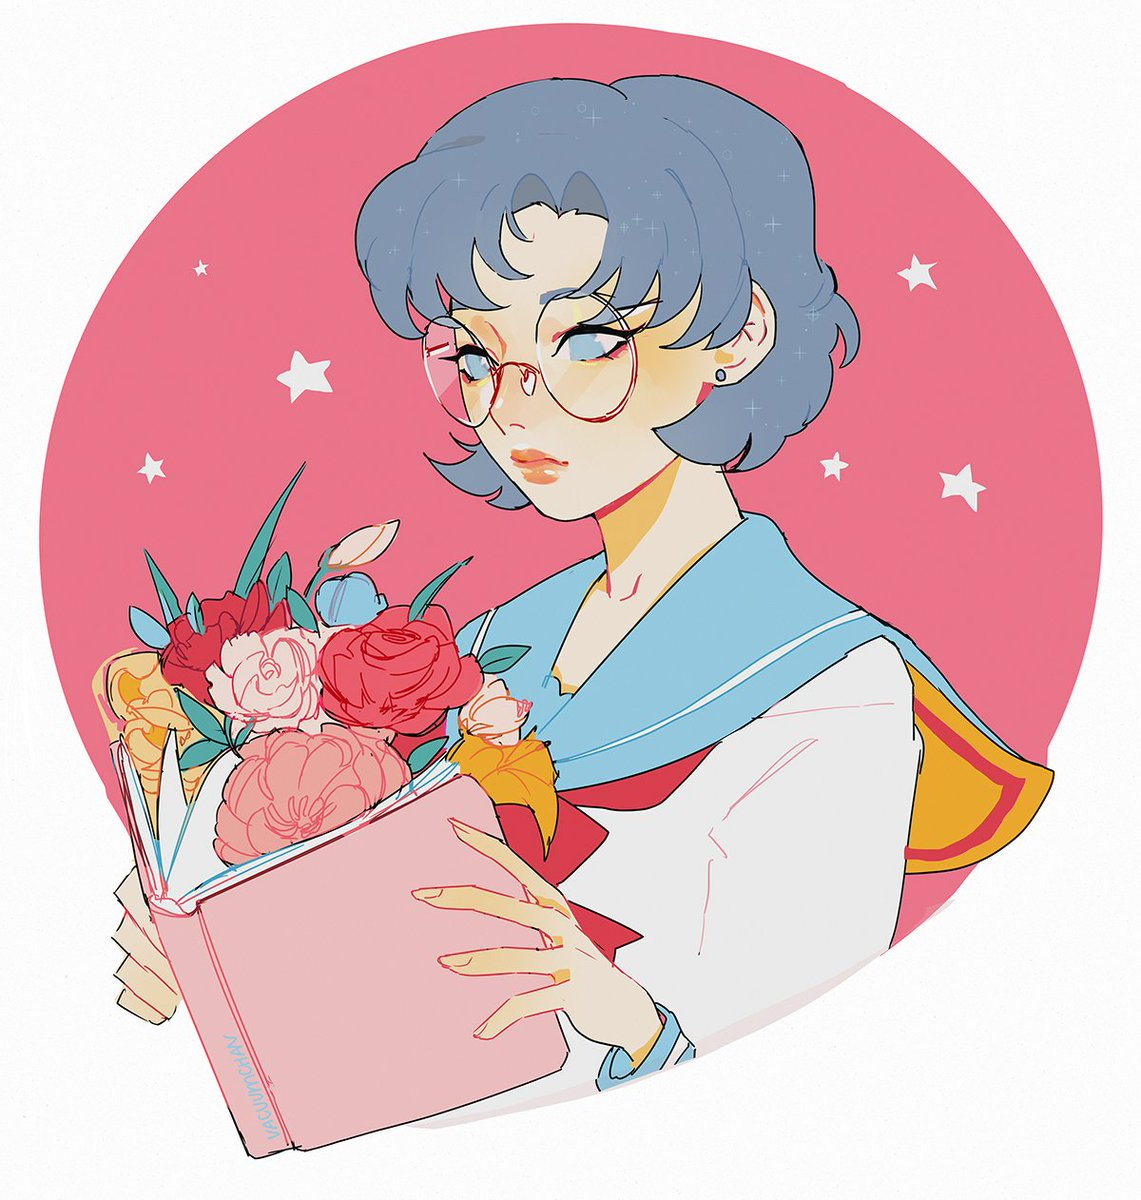 RT @vacuum_chan: hello! I'm vacuum/Sofie, book illustration student I love drawing girls with flowers 💦#VisibleWomen https://t.co/3yf4C0TPQF